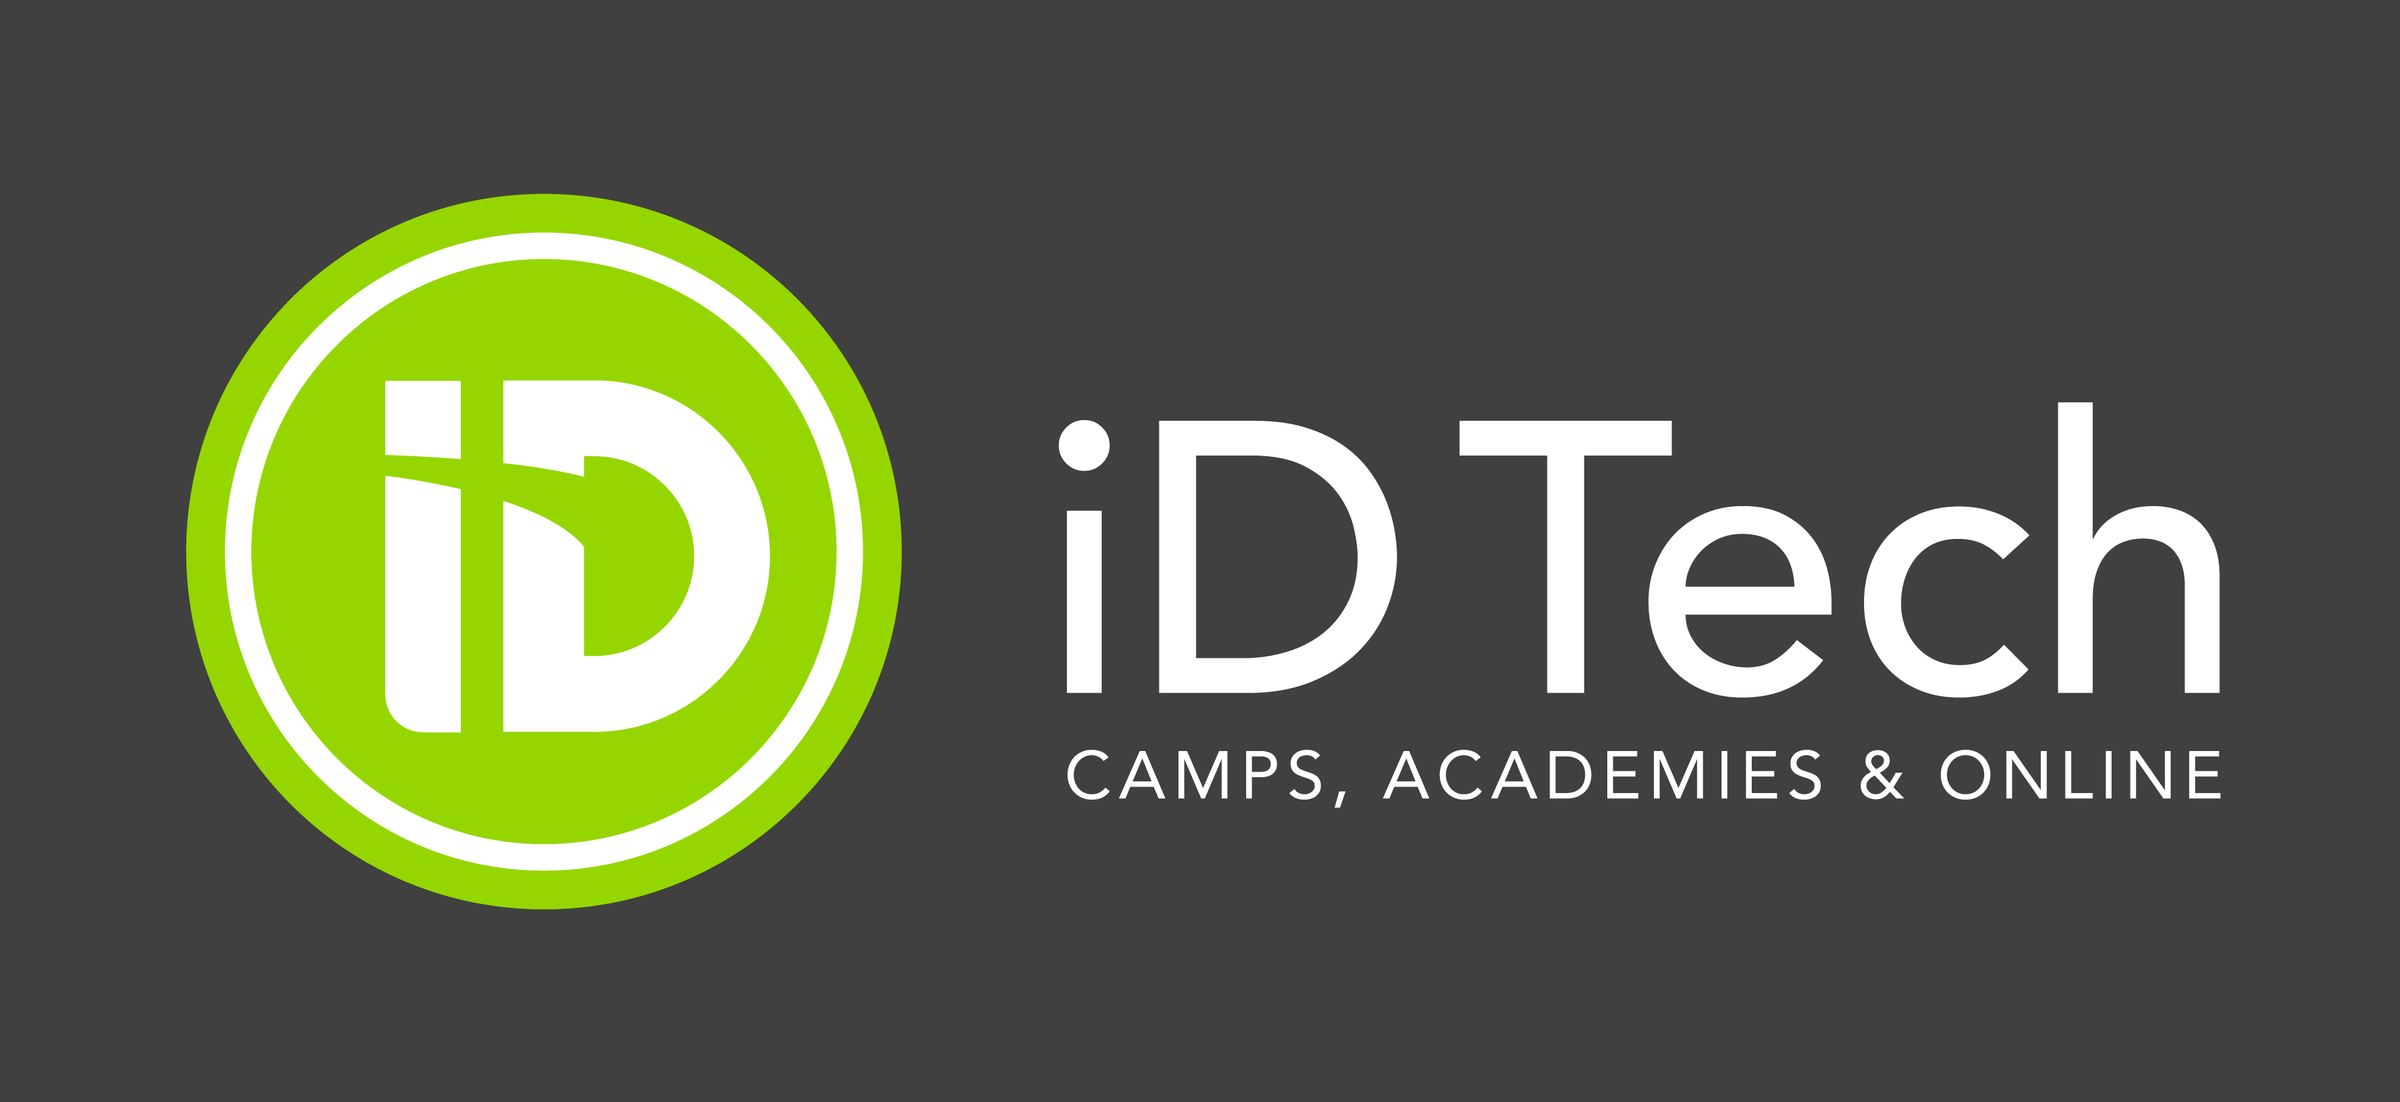 iD Tech Camps: #1 in STEM Education - Held at Imperial College London